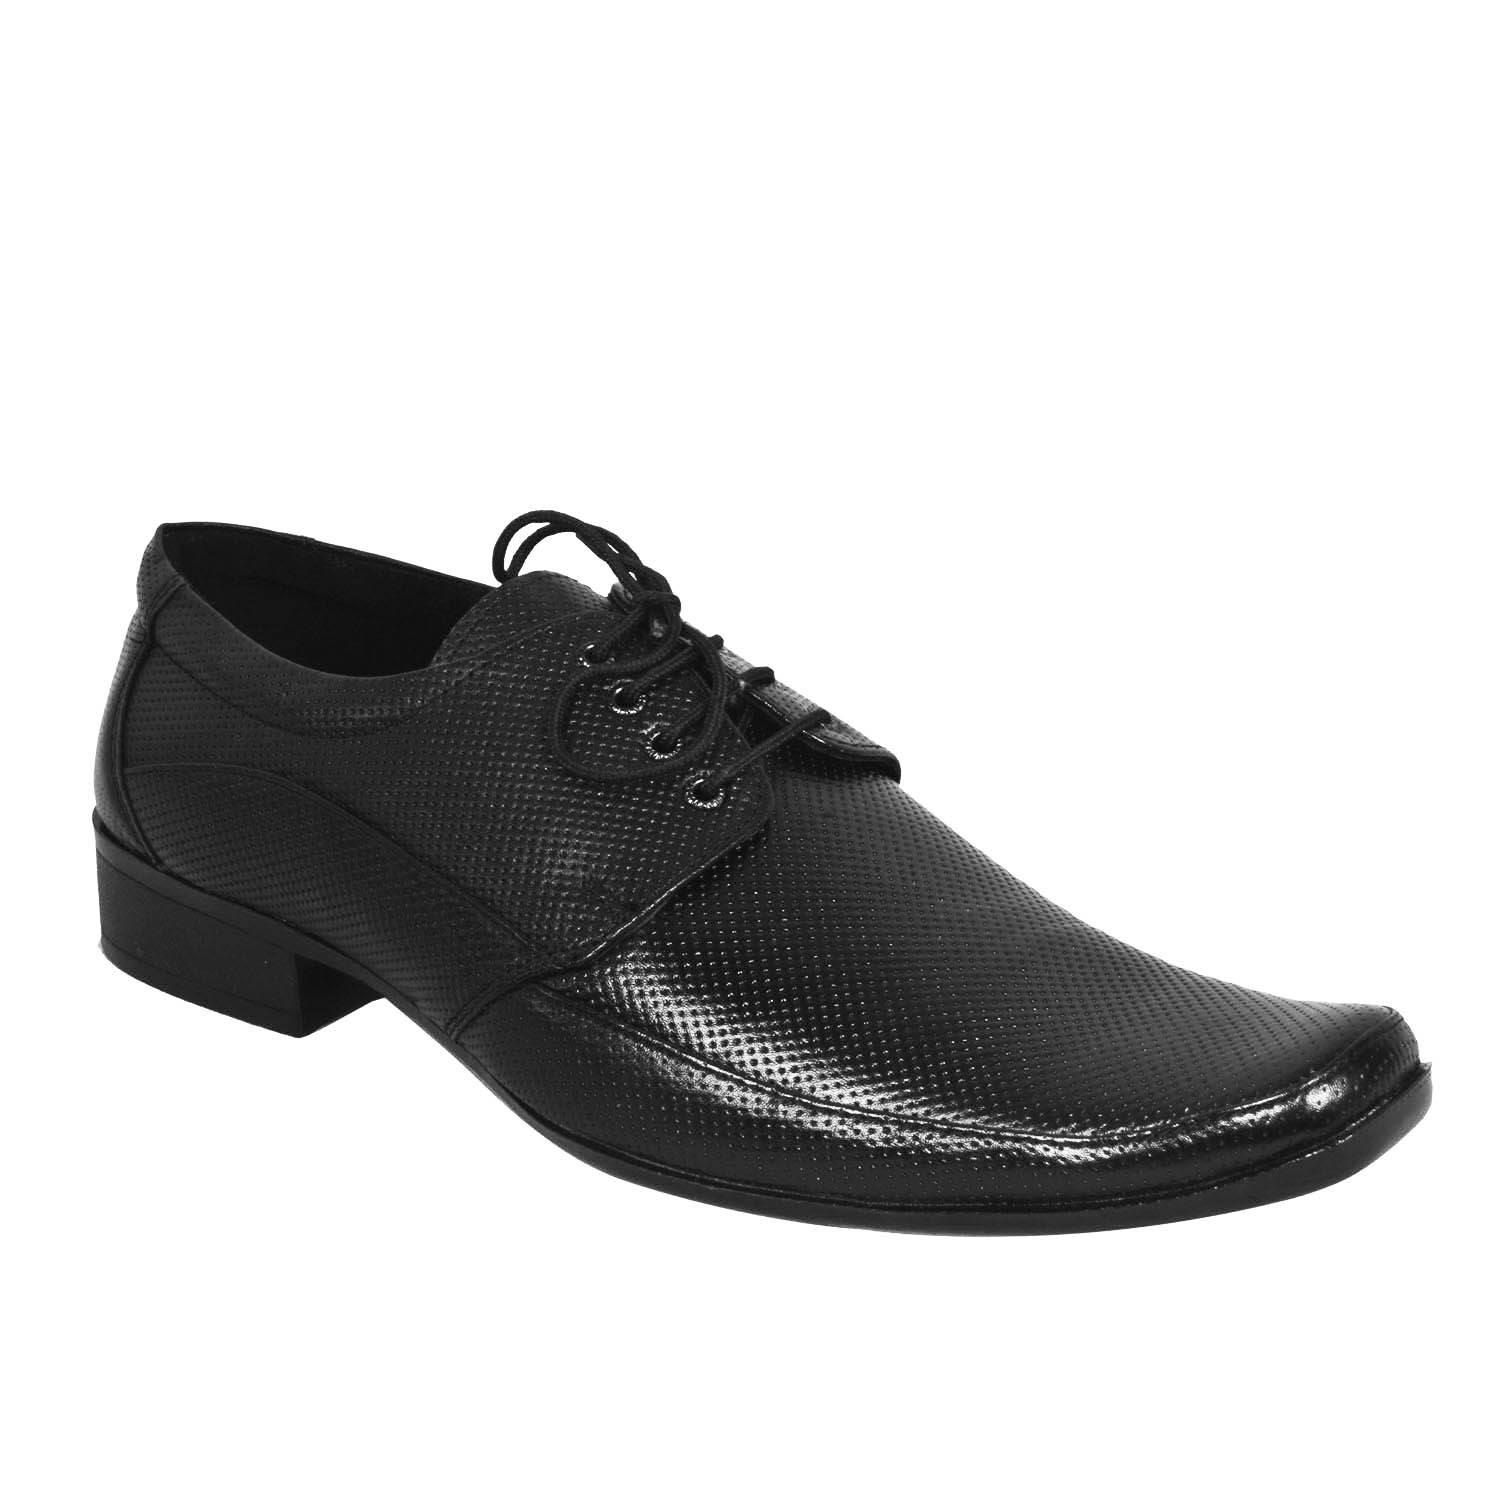 leather king genuine leather formal shoes buy from